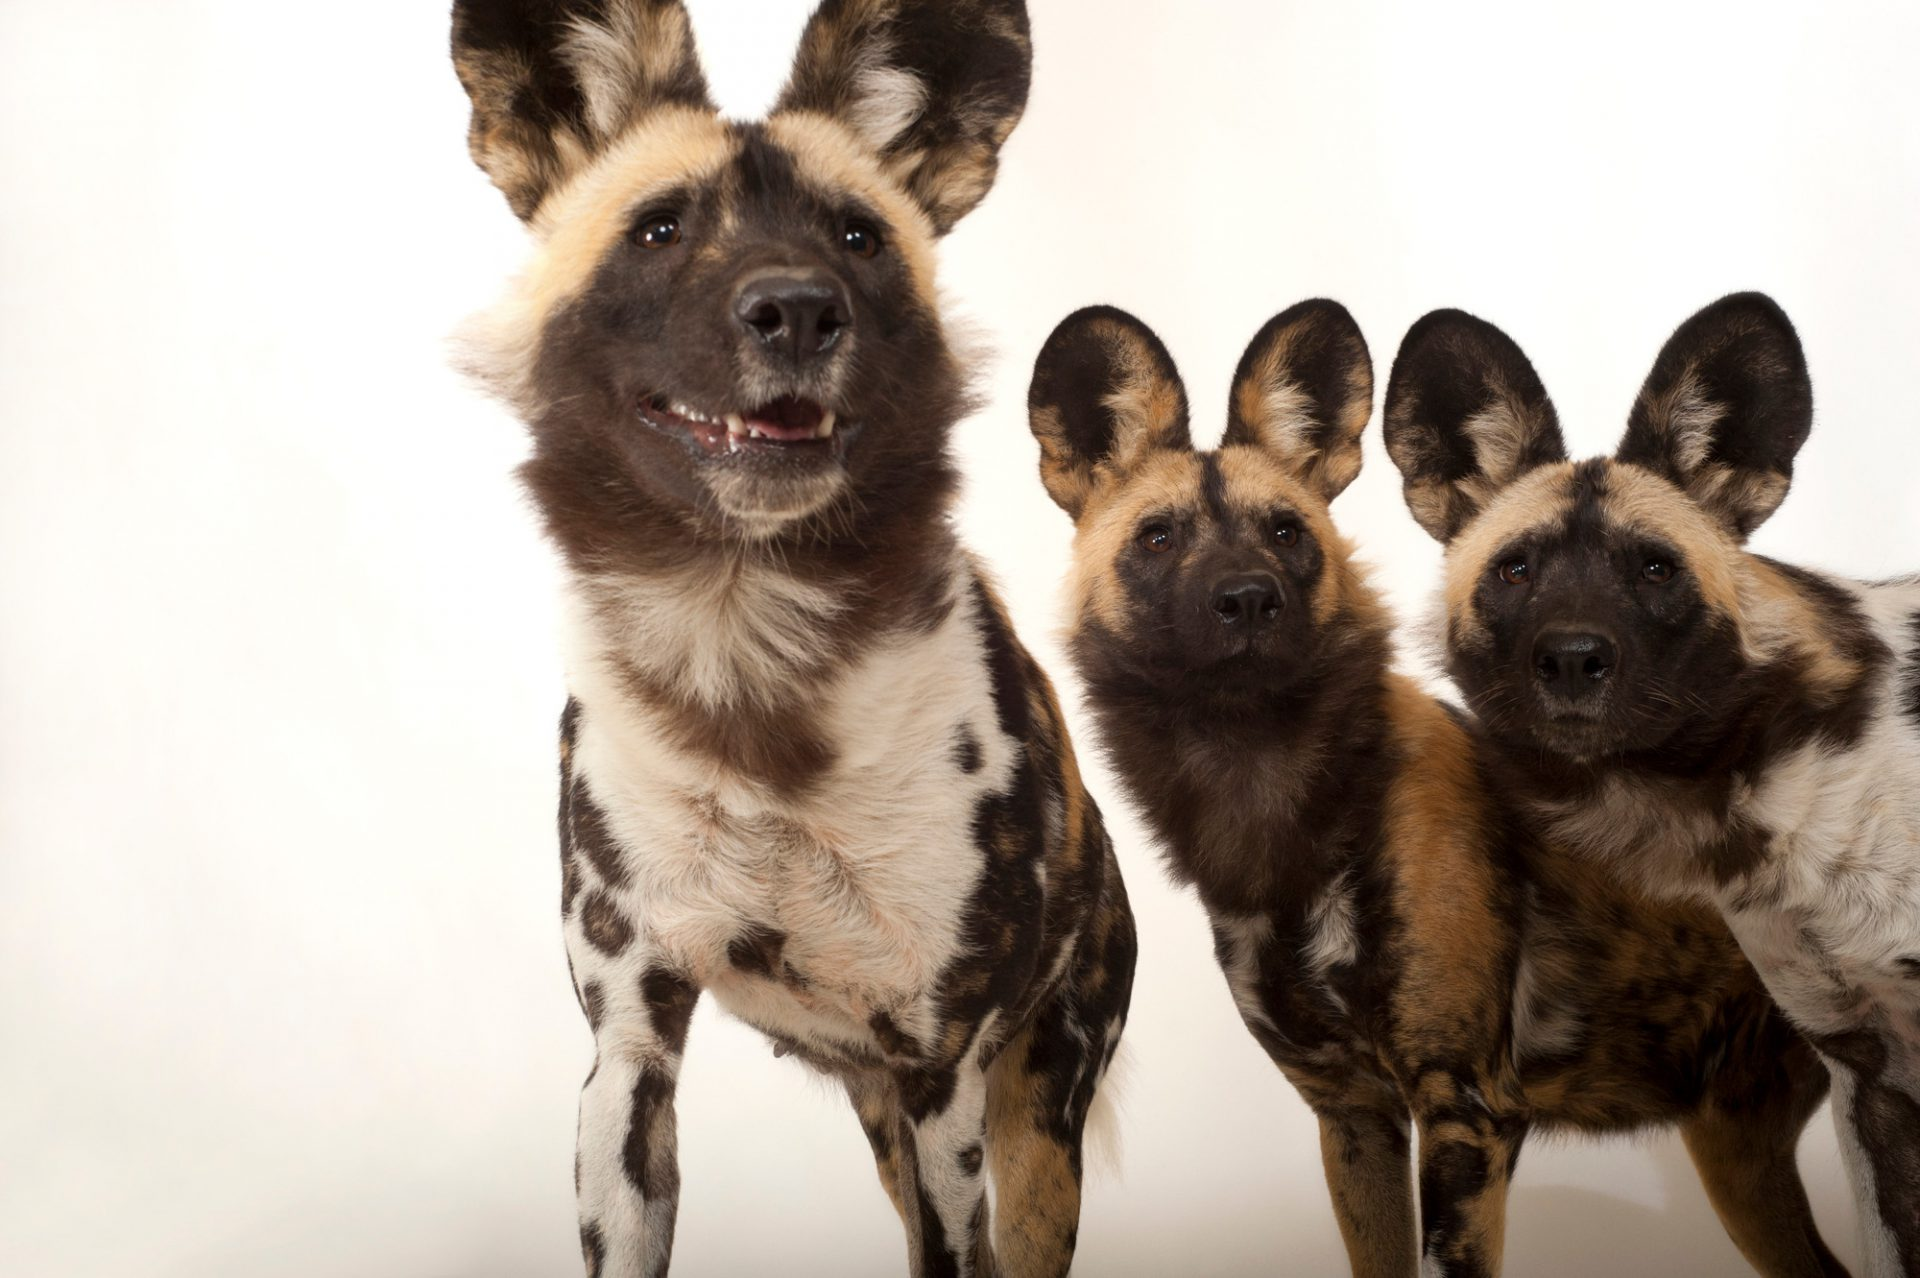 Photo: Federally endangered African wild dogs (Lycaon pictus).